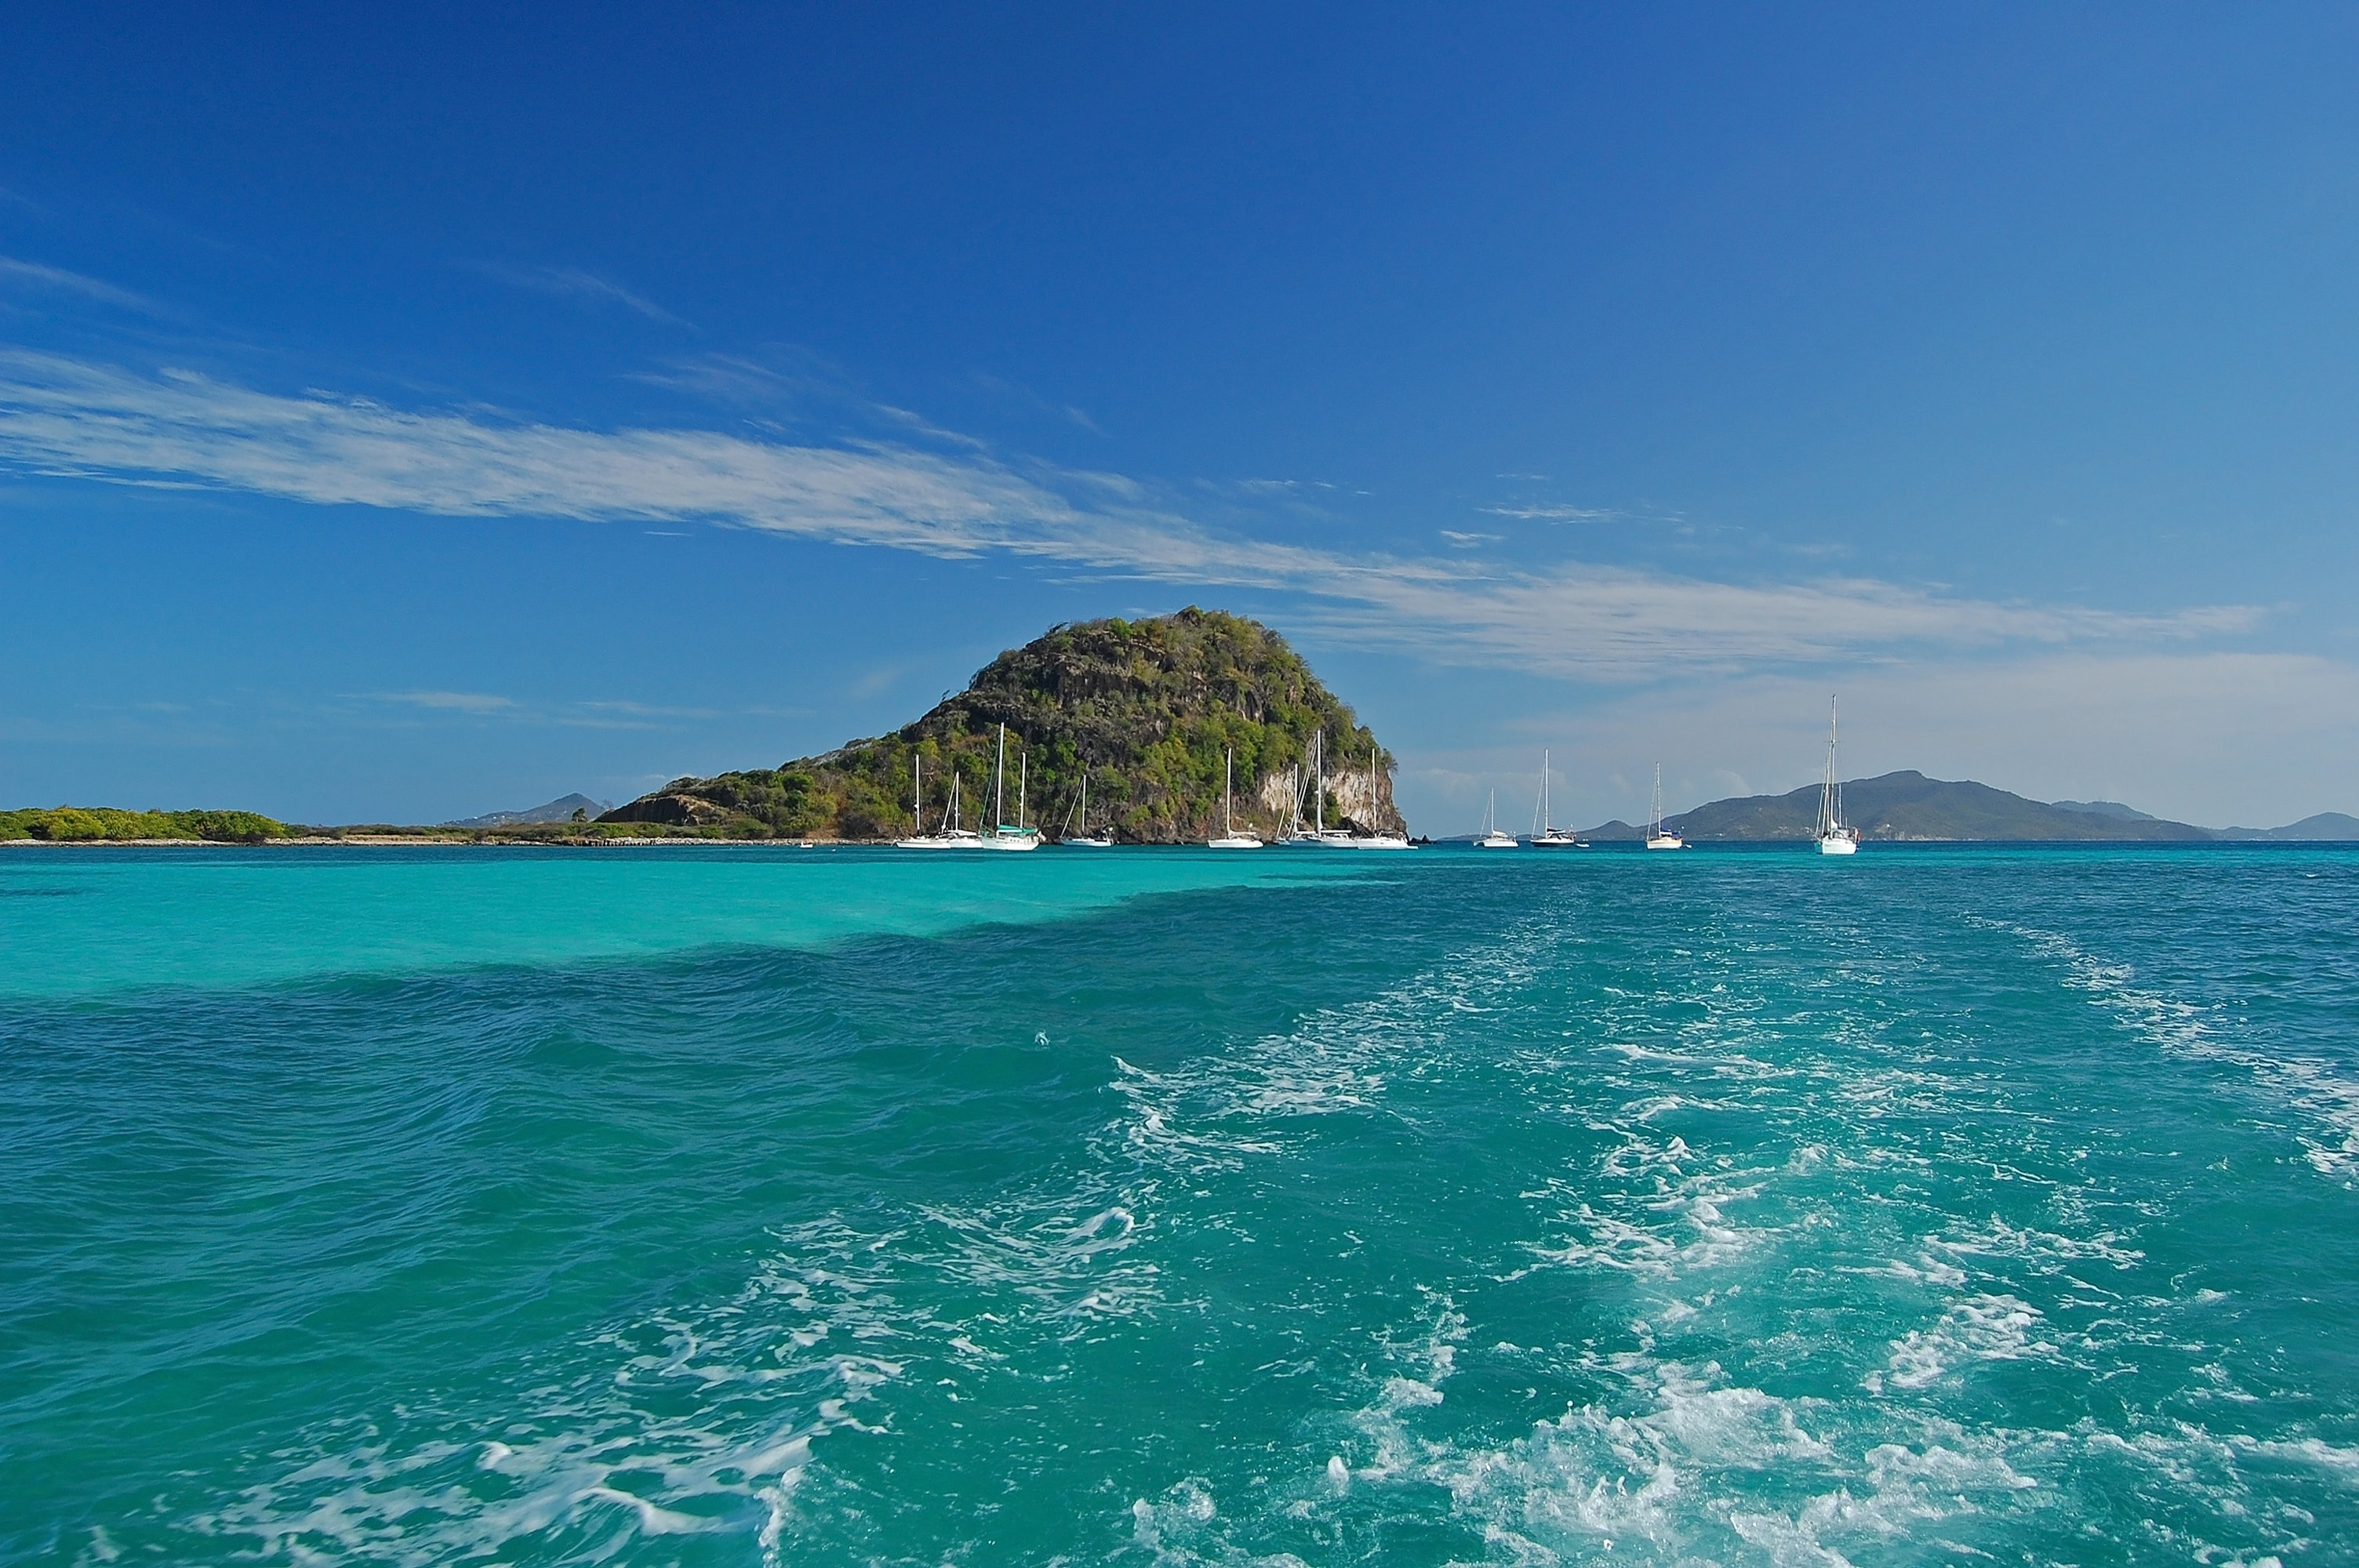 st-vincent-grenadines-yacht-charter-st-vincent-grenadines-yacht-rental-st-vincent-grenadines-boat-charter-st-vincent-grenadines-boat-rental-st-vincent-grenadines-sailing-caribbean-dream